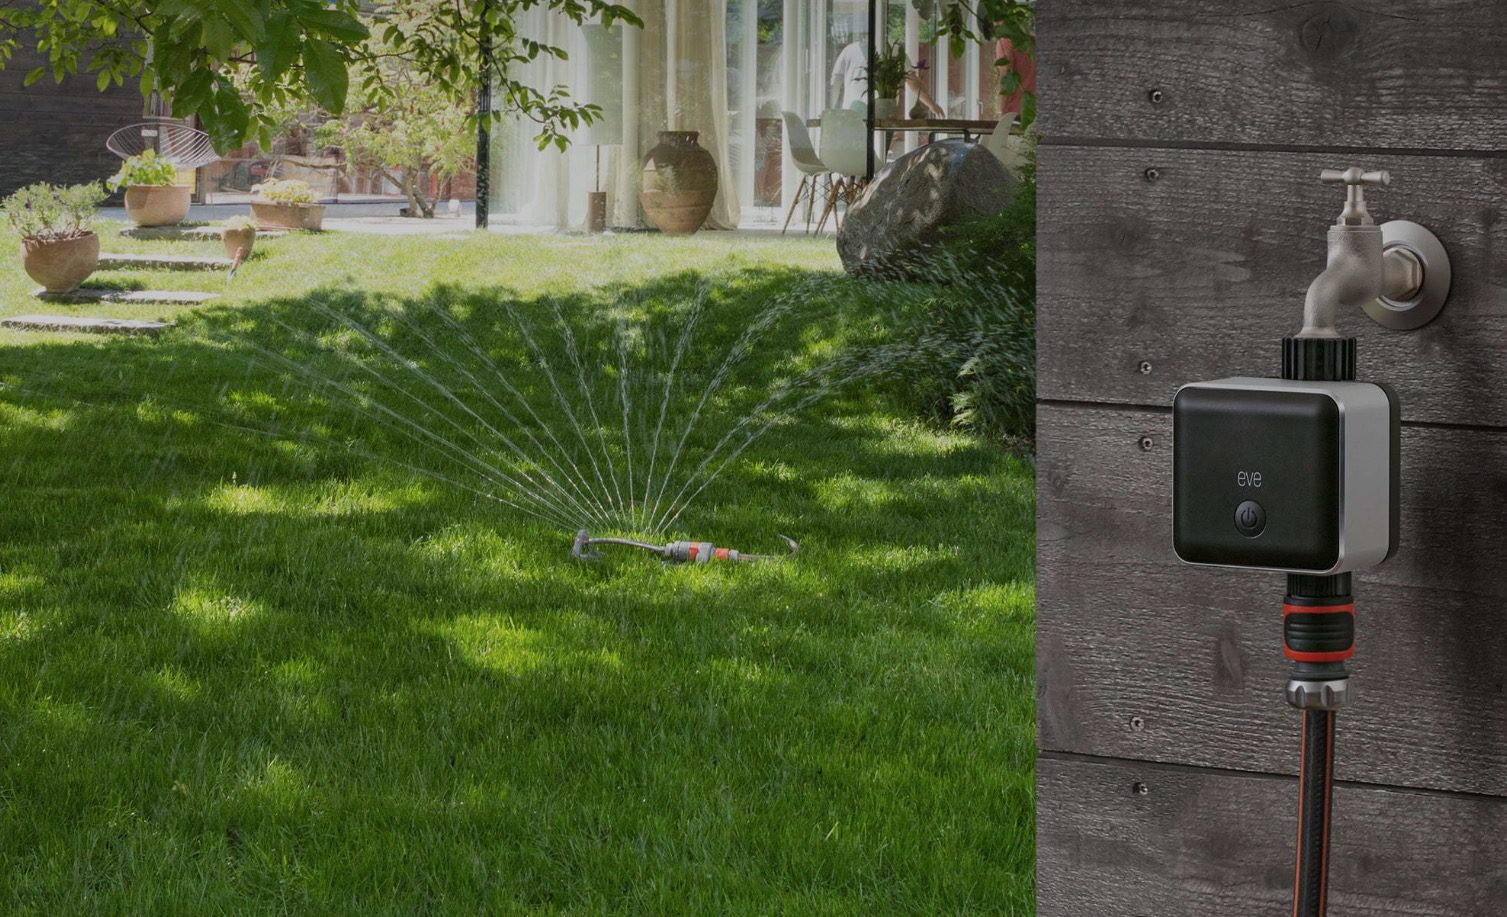 Elgato launches Eve Aqua to let you control your garden hose and sprinklers with HomeKit